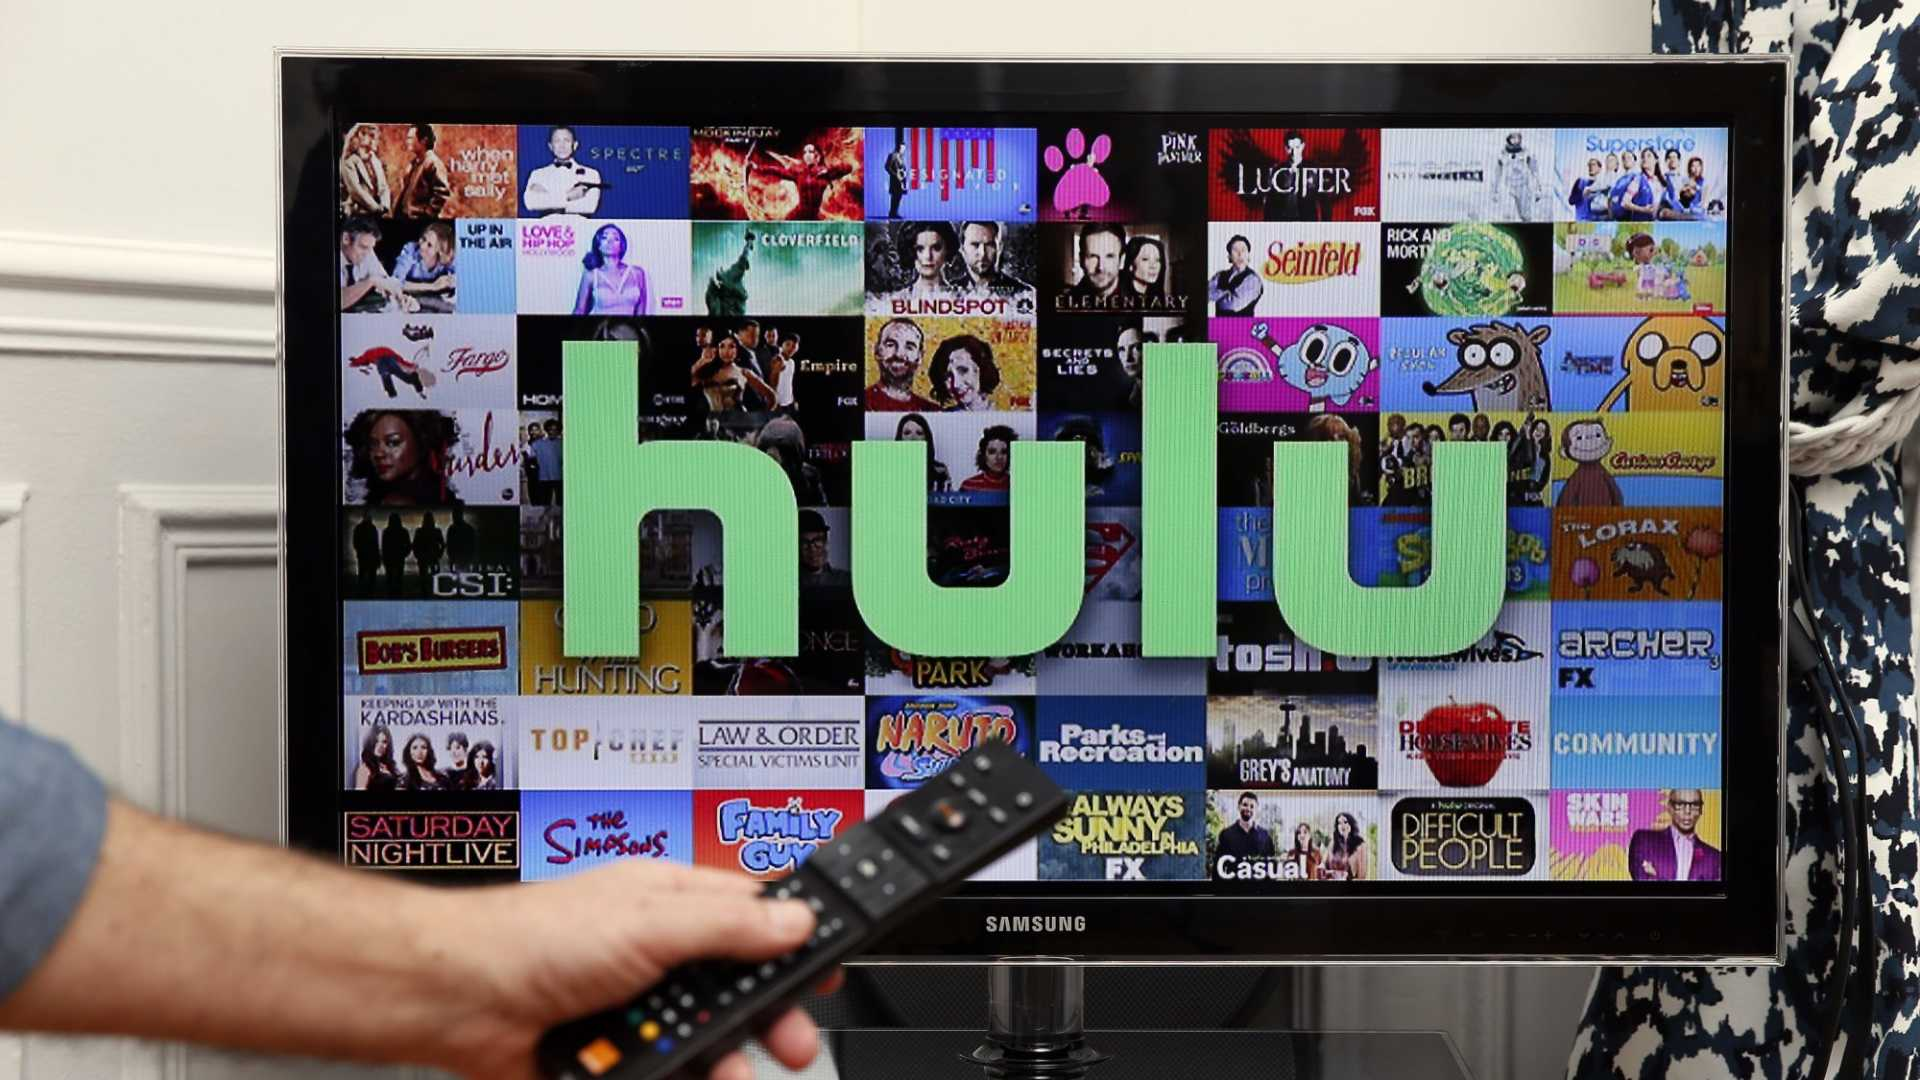 Hulu Just Announced It's Raising Prices by 22 Percent. So Much for Saving Money by Cord-Cutting